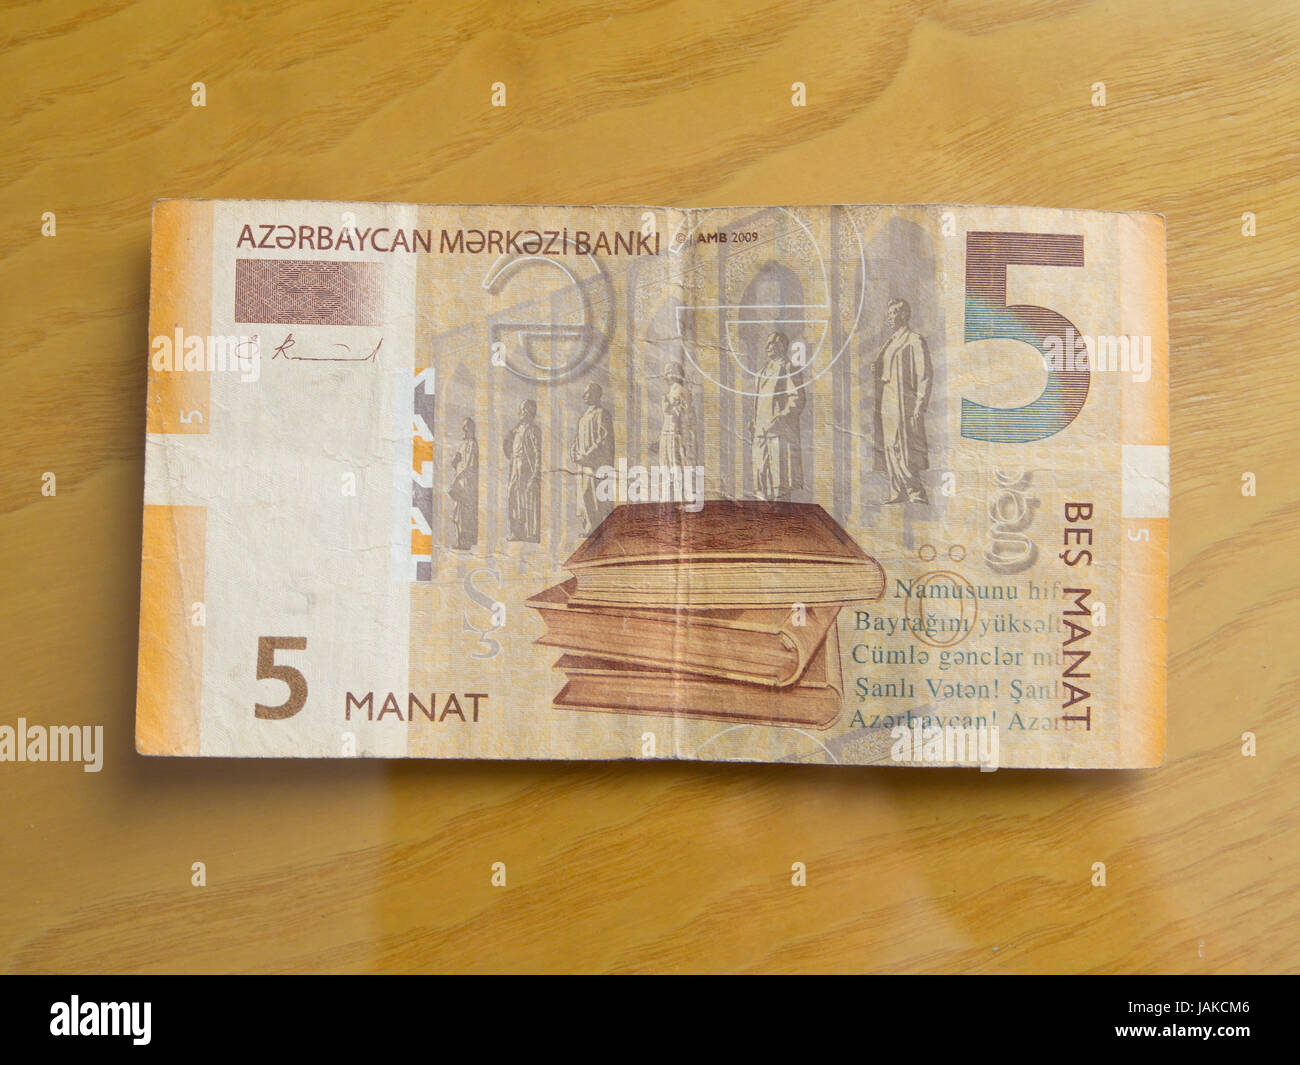 Azerbaijani currency, five manat, isolated on a wooden table - Stock Image